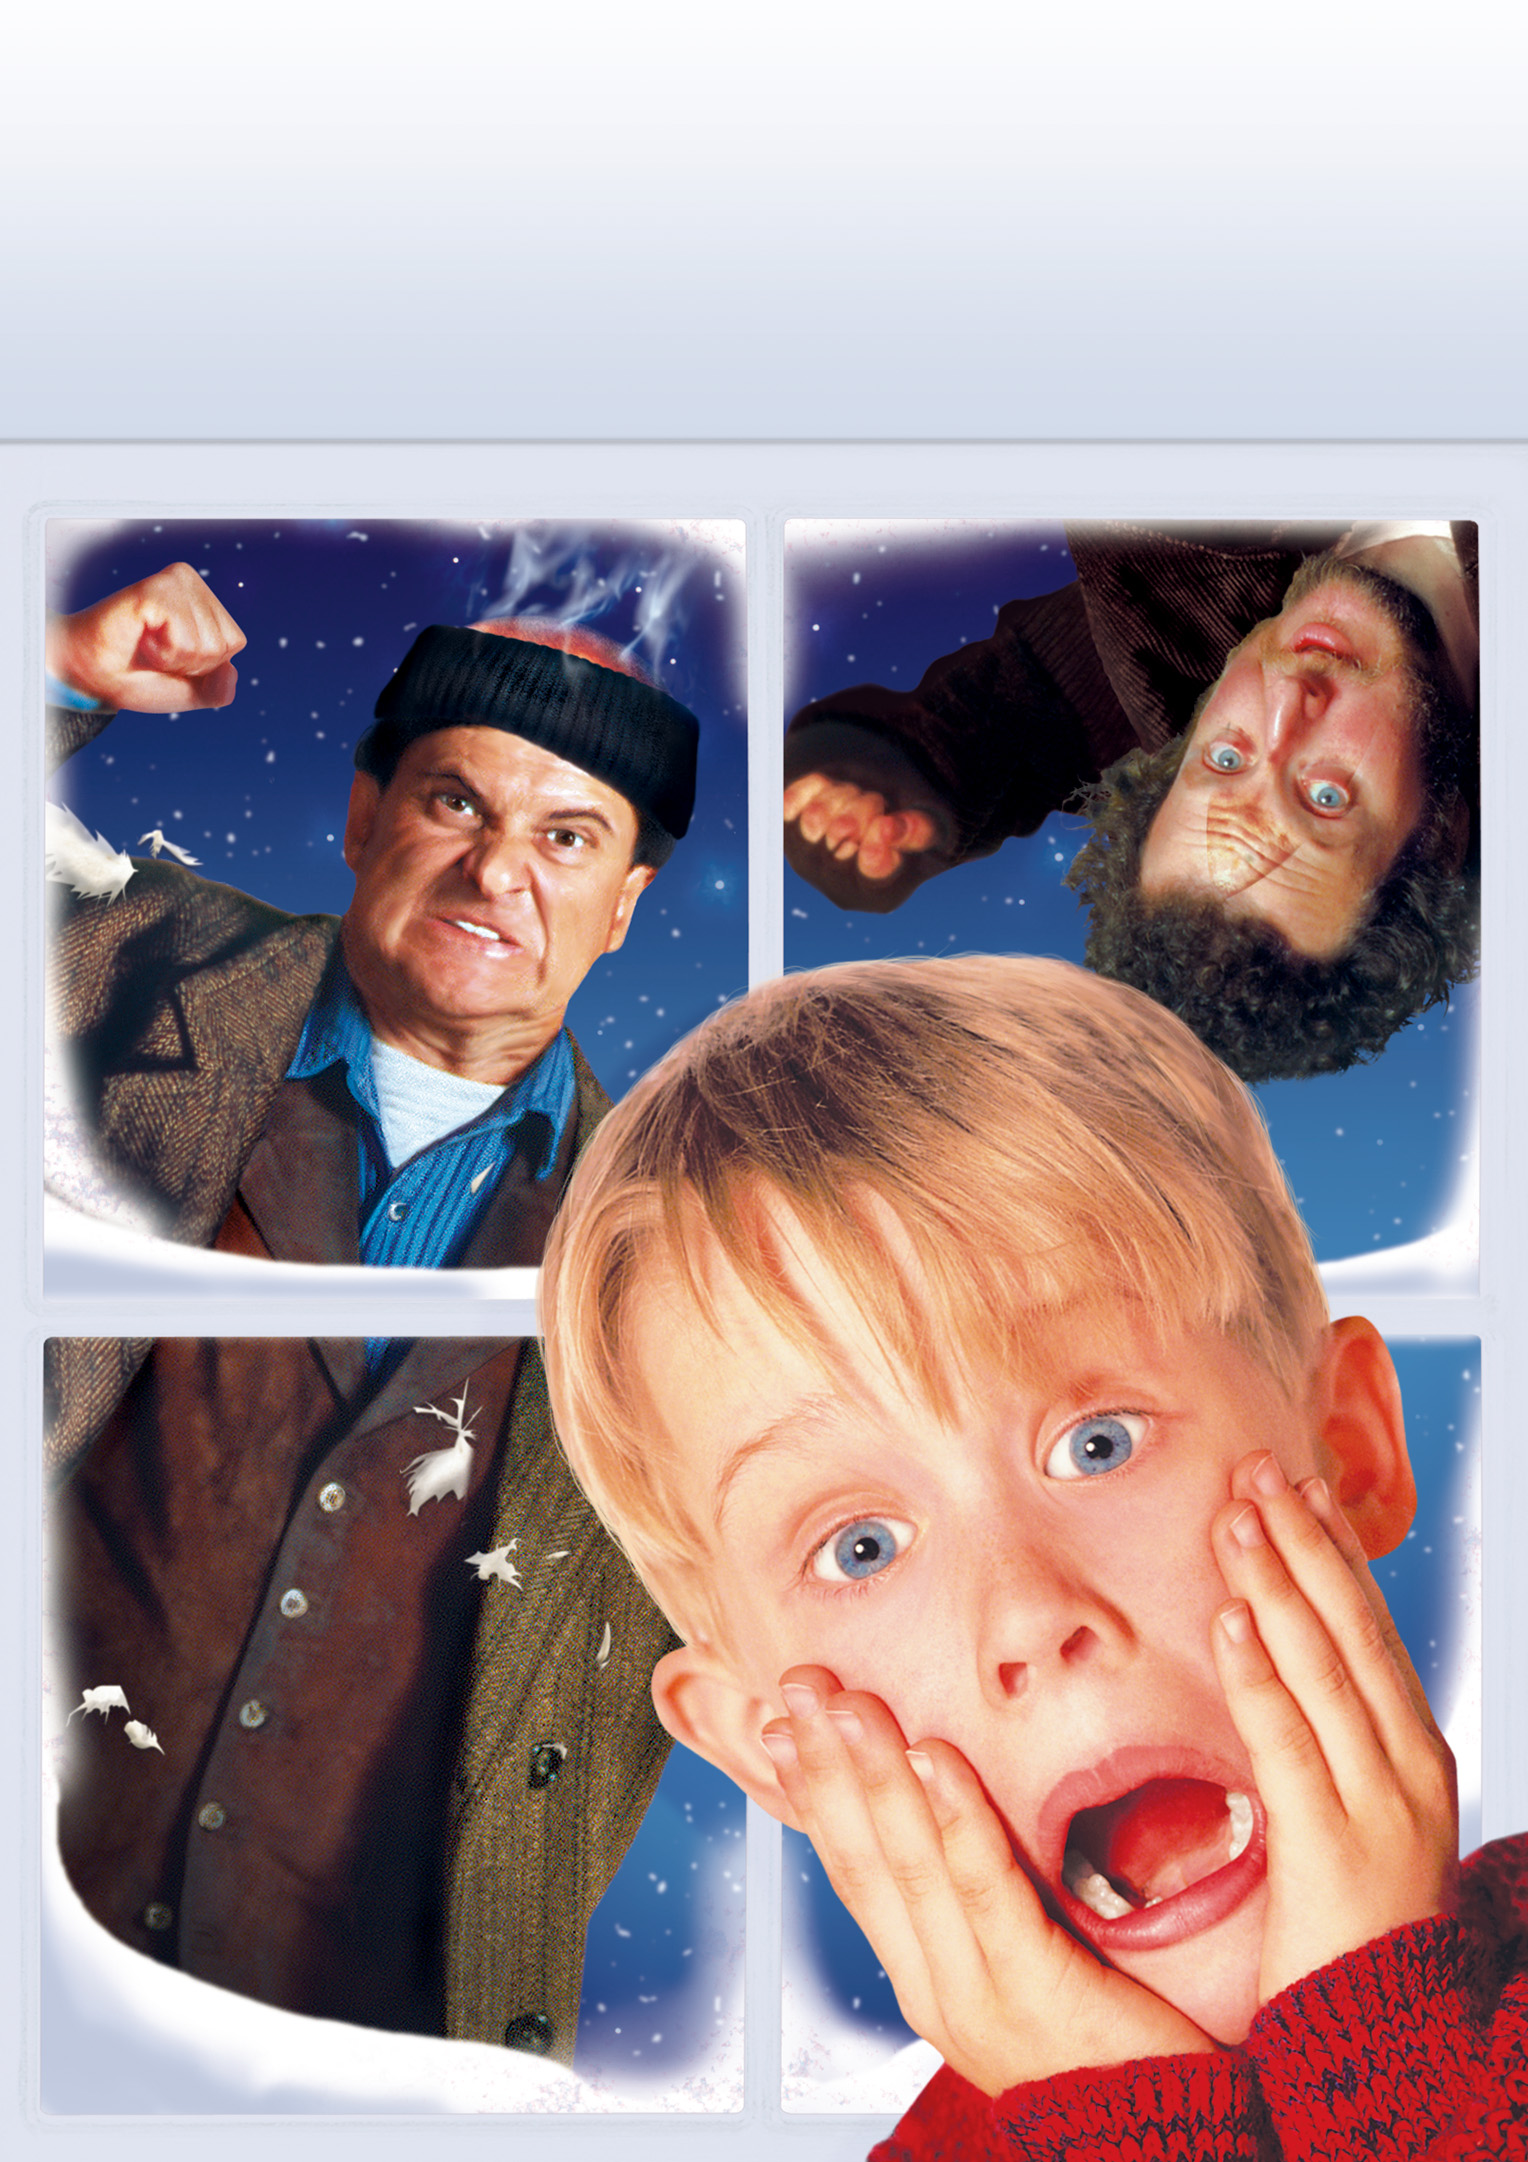 #HomeAlone #FHEInsiders #Movie #Christmas #Holiday #ad